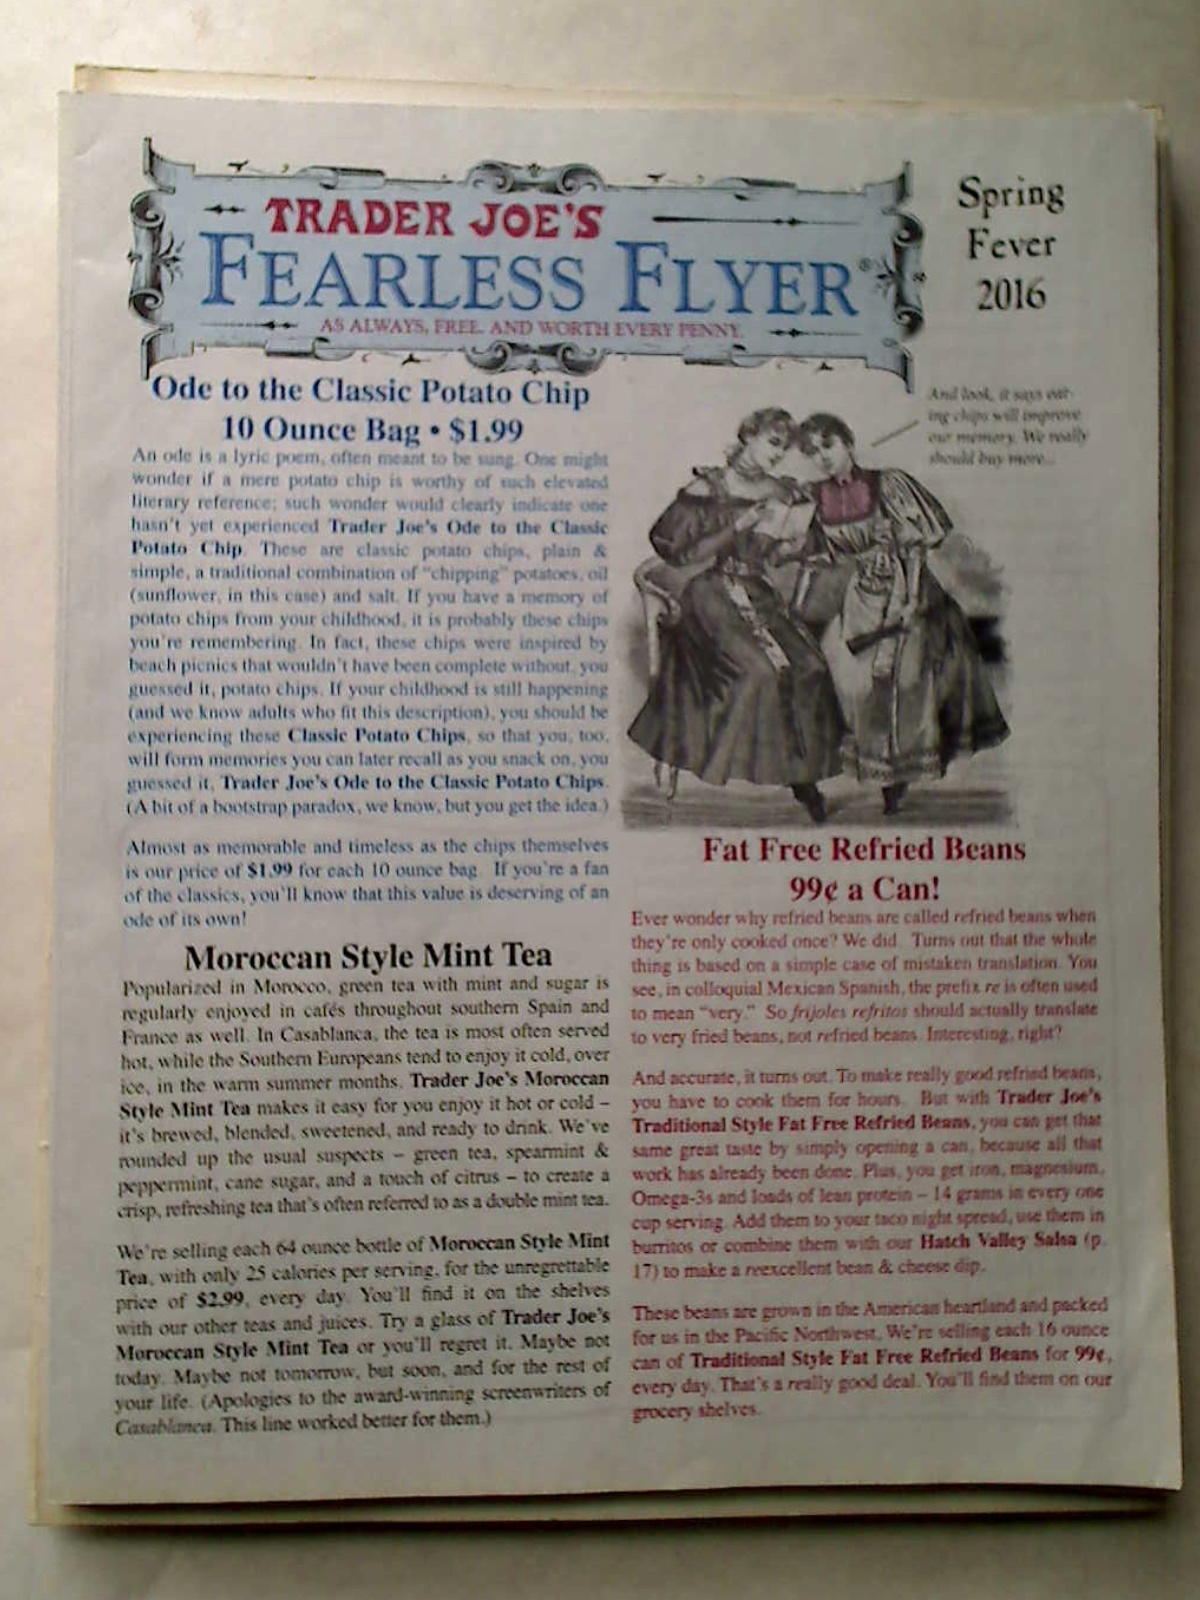 Trader Joe's Fearless Flyer. Spring Fever 2016. CA Edition.